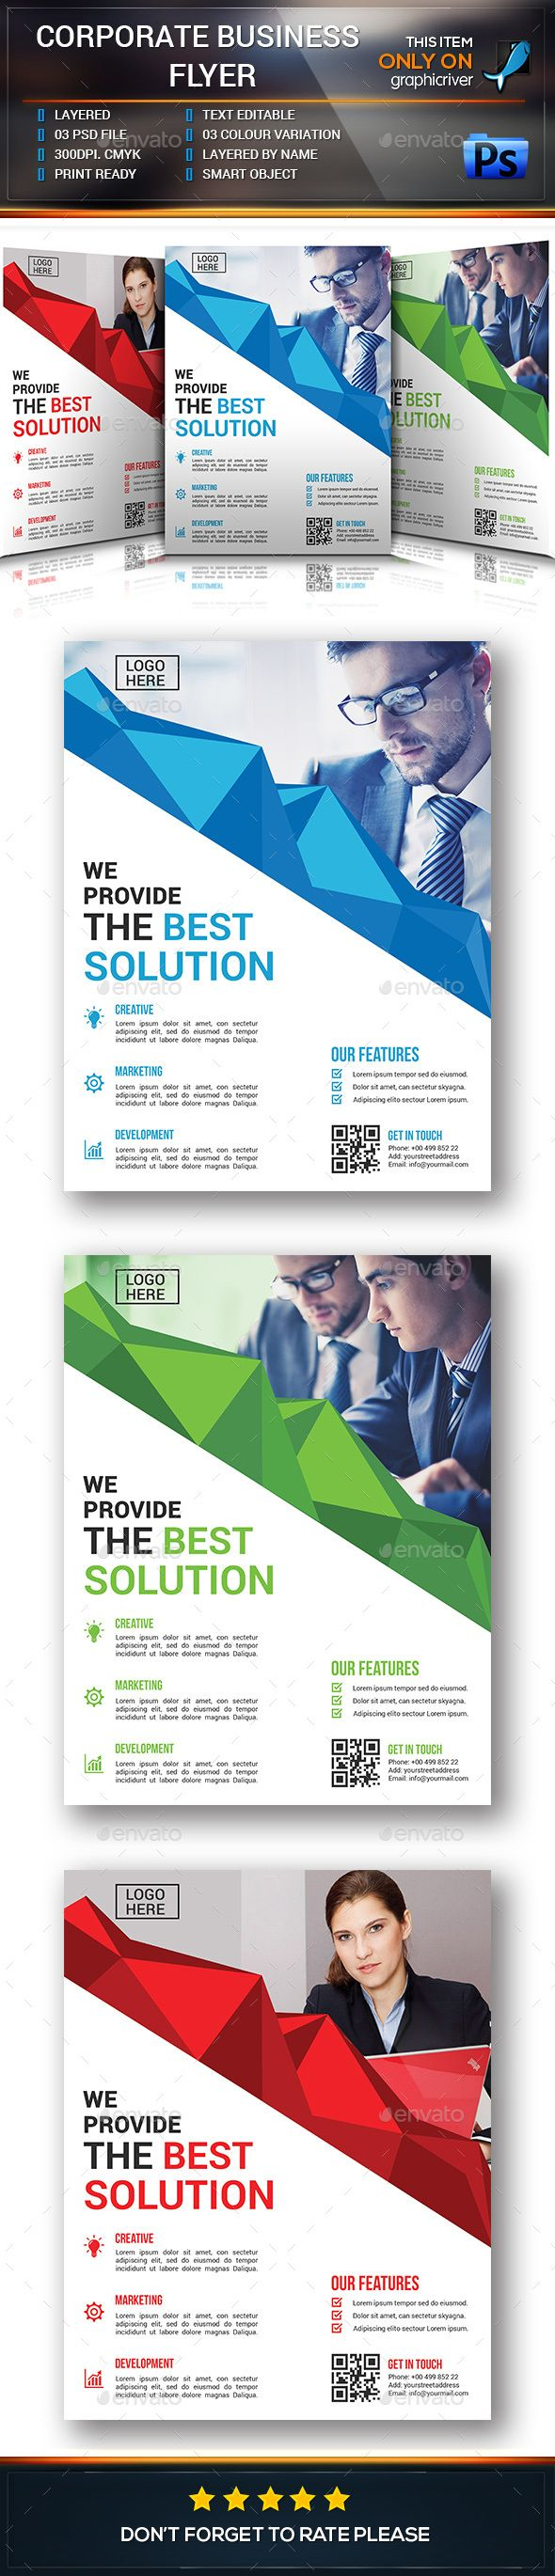 Corporate business flyer business flyers corporate business and corporate business flyer template psd download here httpgraphicriver flashek Images